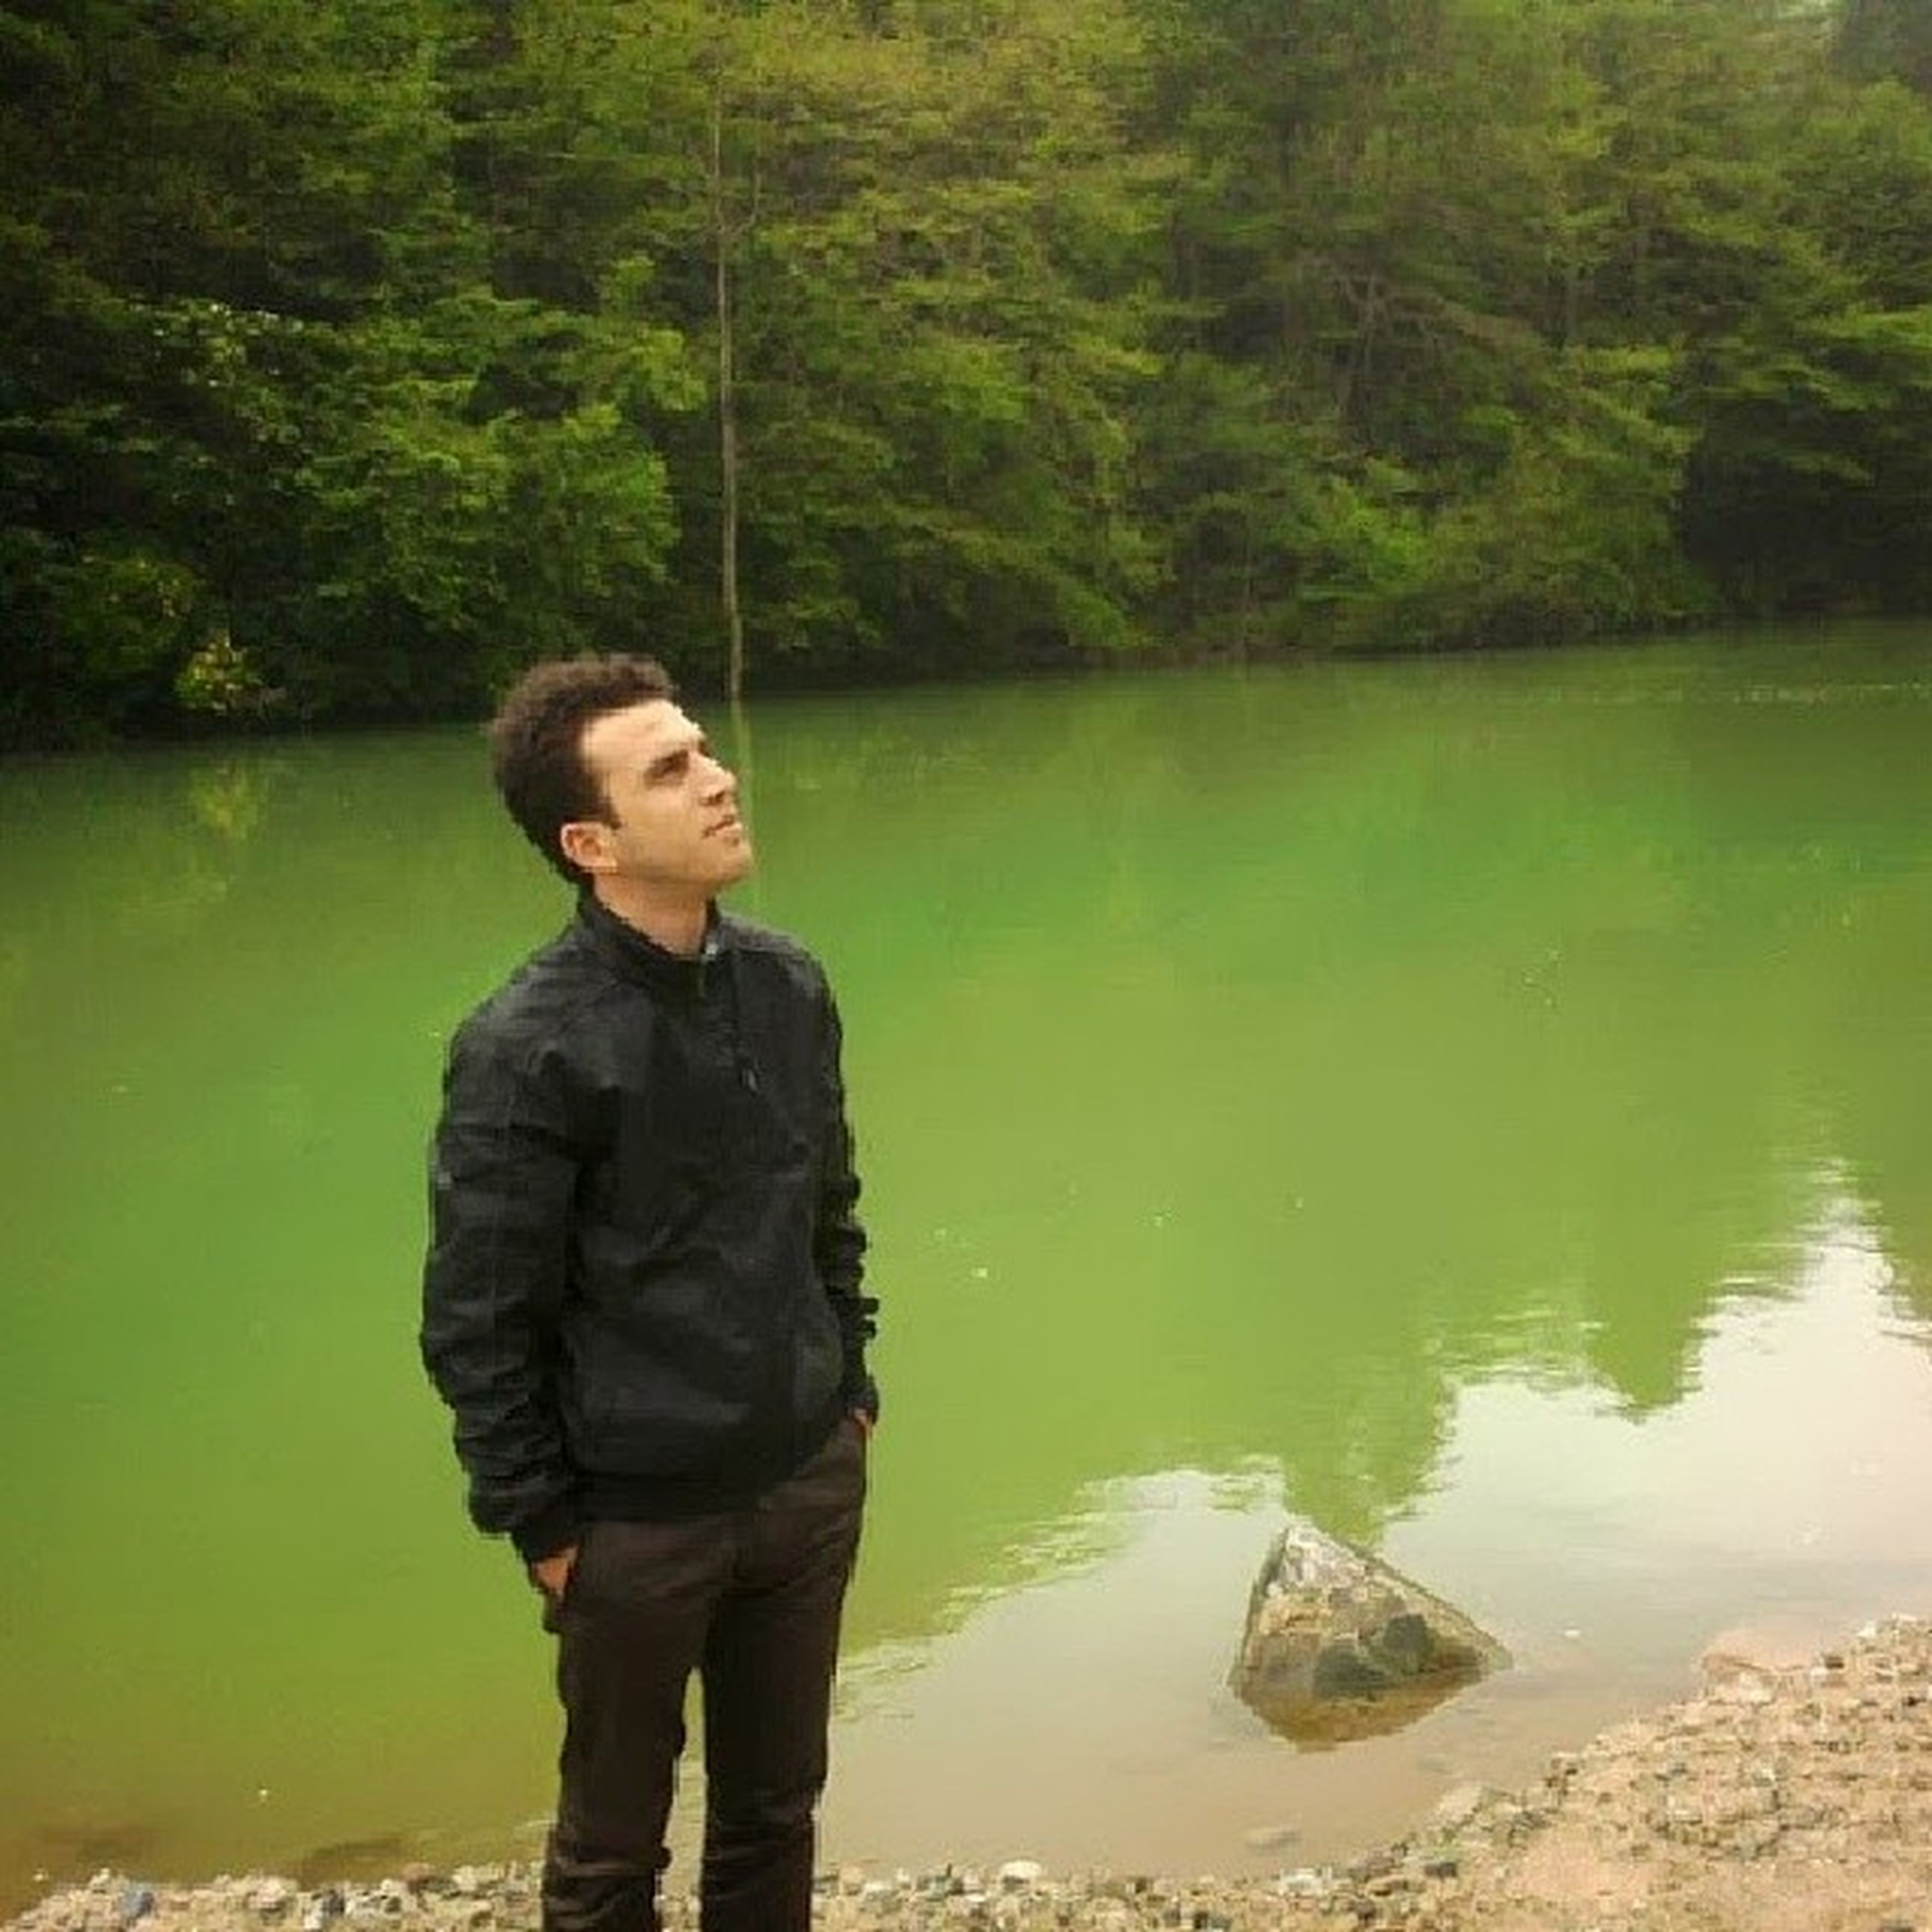 water, lifestyles, casual clothing, standing, leisure activity, three quarter length, lake, young adult, tree, nature, young men, tranquility, person, waist up, river, full length, beauty in nature, rear view